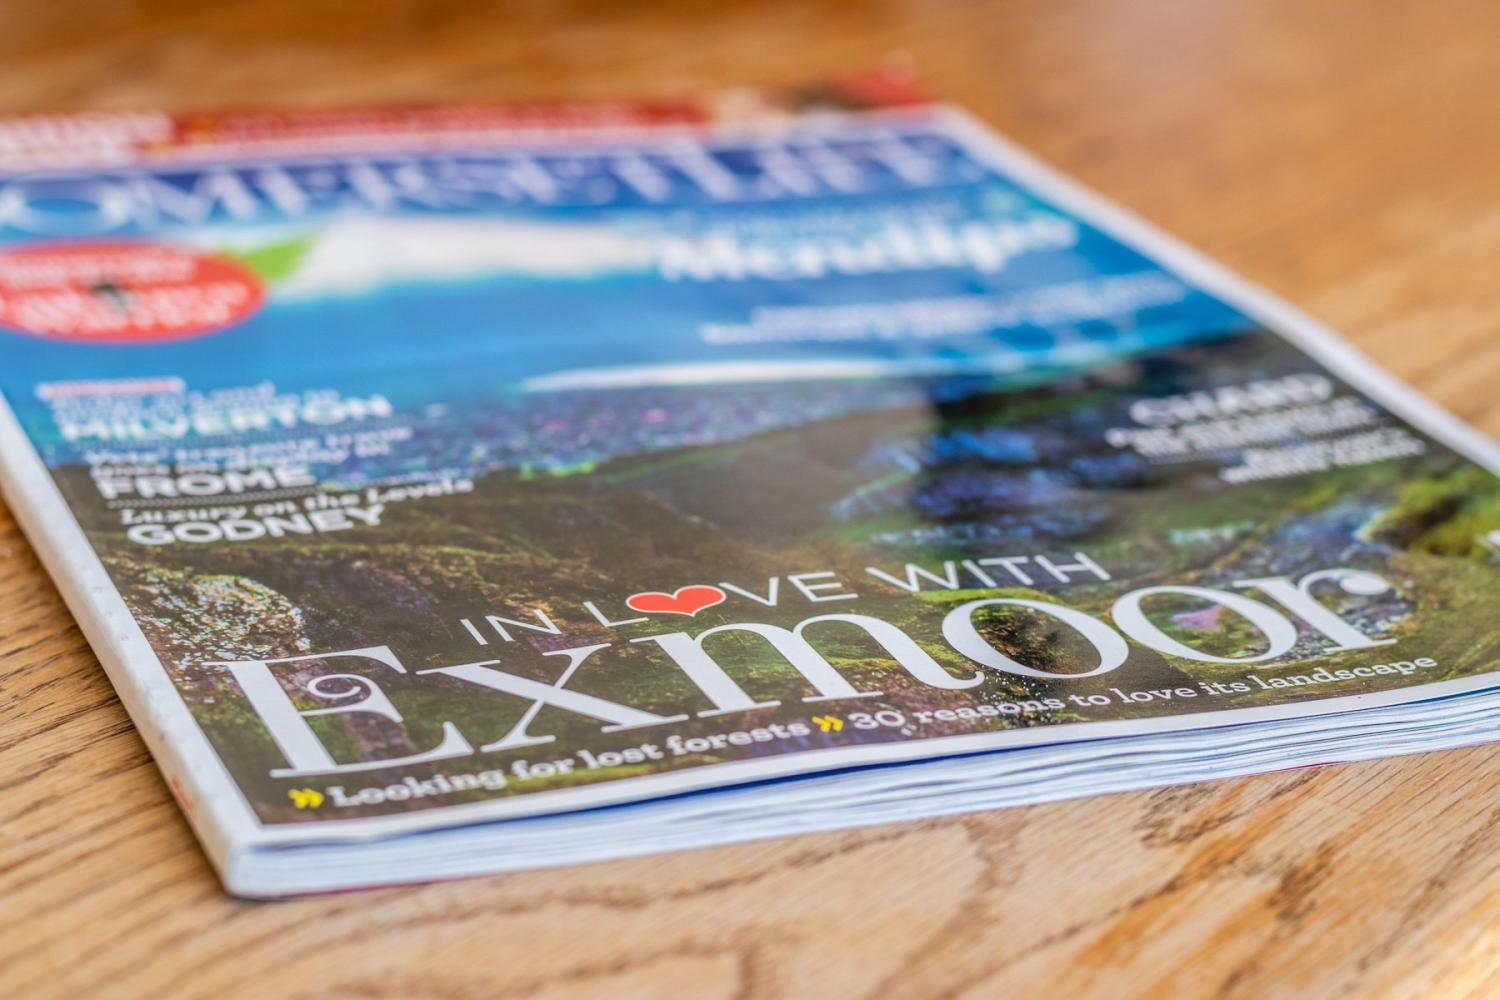 Quarry Cottage Exmoor magazine